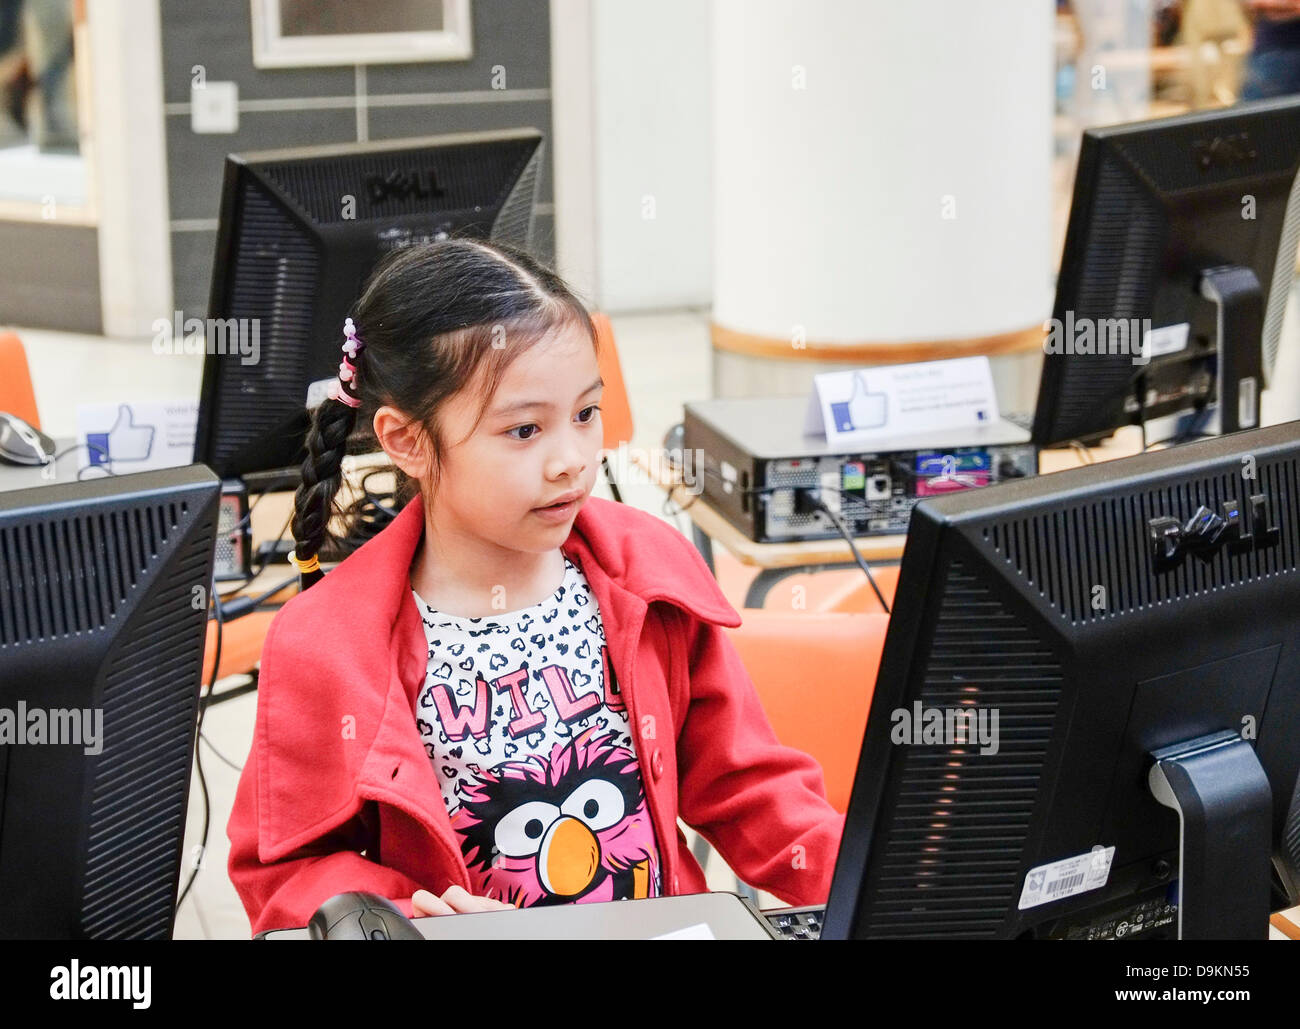 Basildon, Essex, UK.  21st June 2013.  A young girl engrossed in playing a computer game at the South Essex College - Stock Image